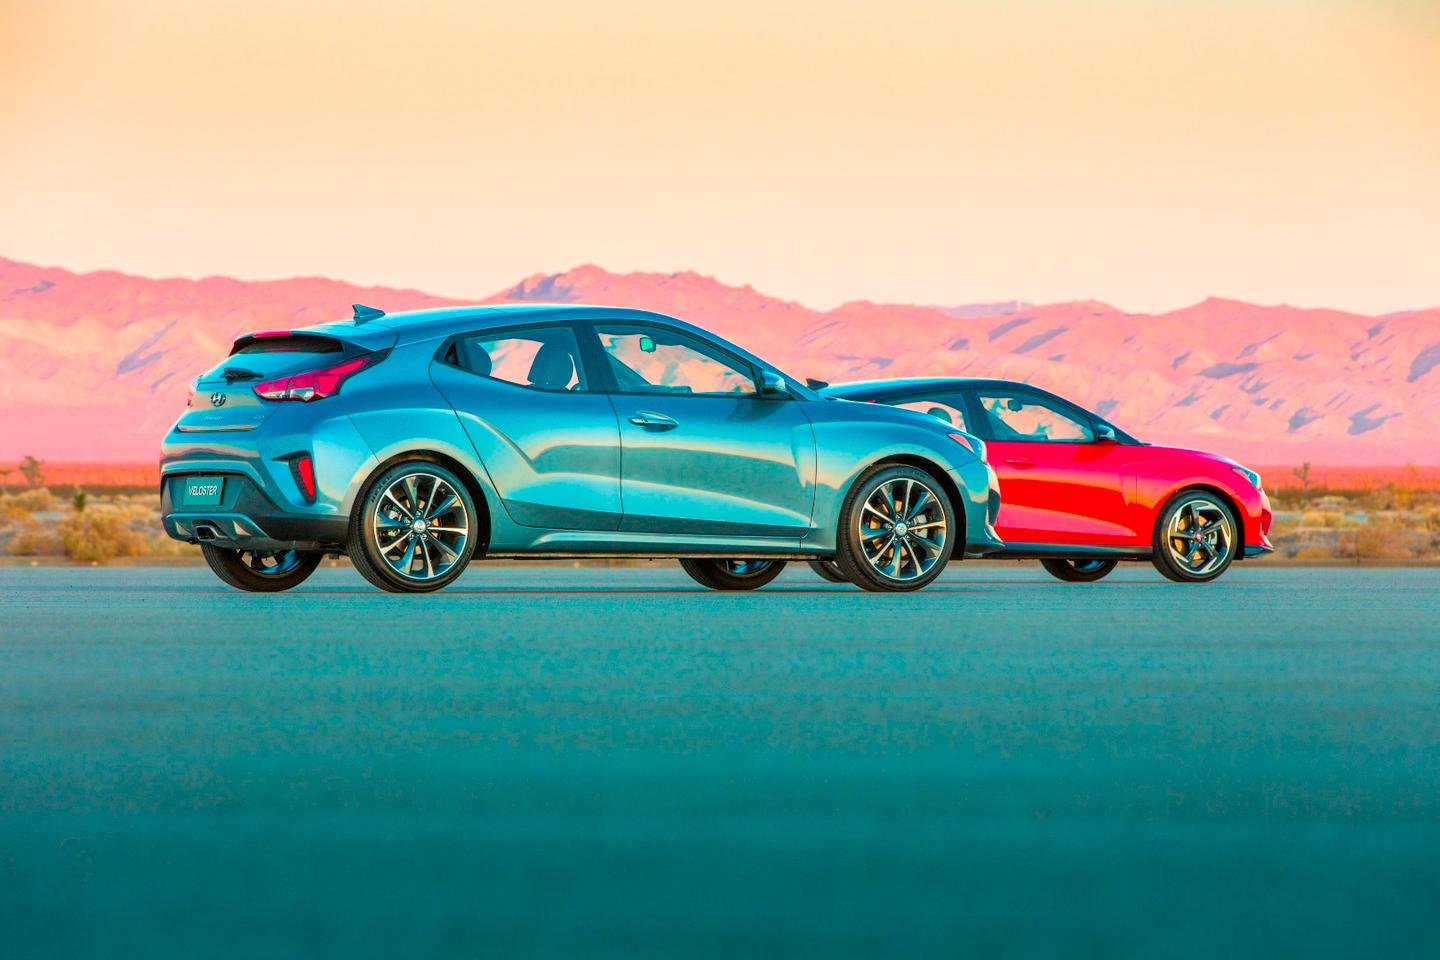 The 2019 Hyundai Veloster and Veloster Turbo have debuted in Detroit and will enter the U.S. market soon